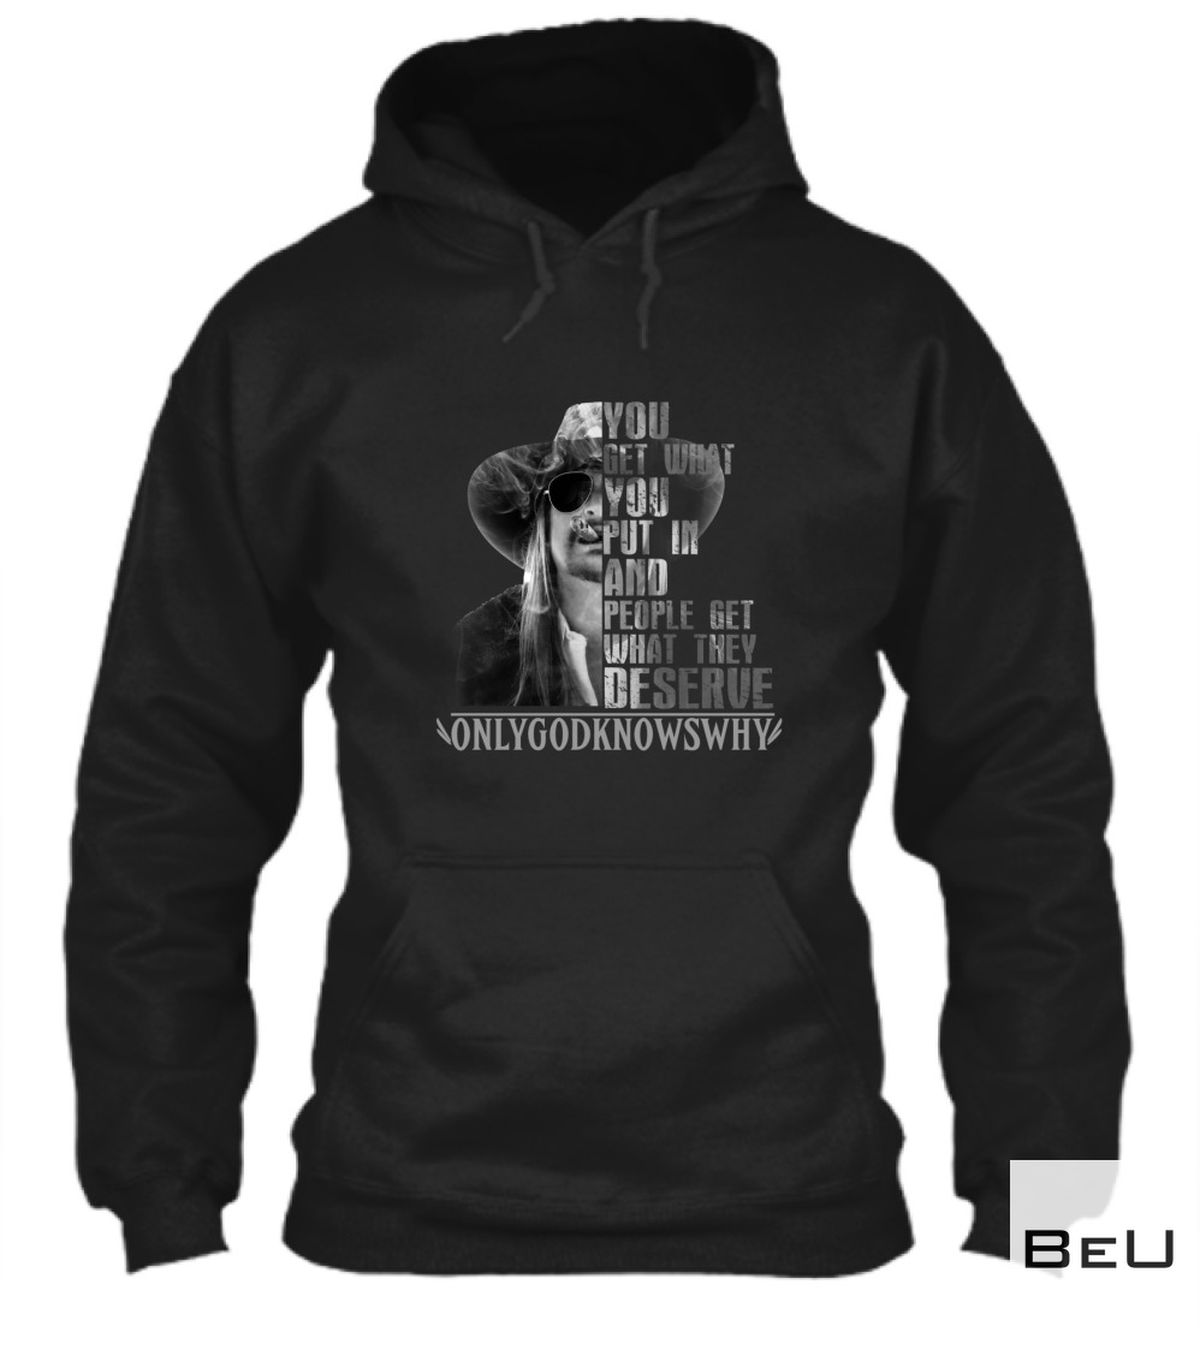 Limited Edition You Get What You Put In And People Get What They Deserve Only Gods Know Why Shirt, hoodie, tank top